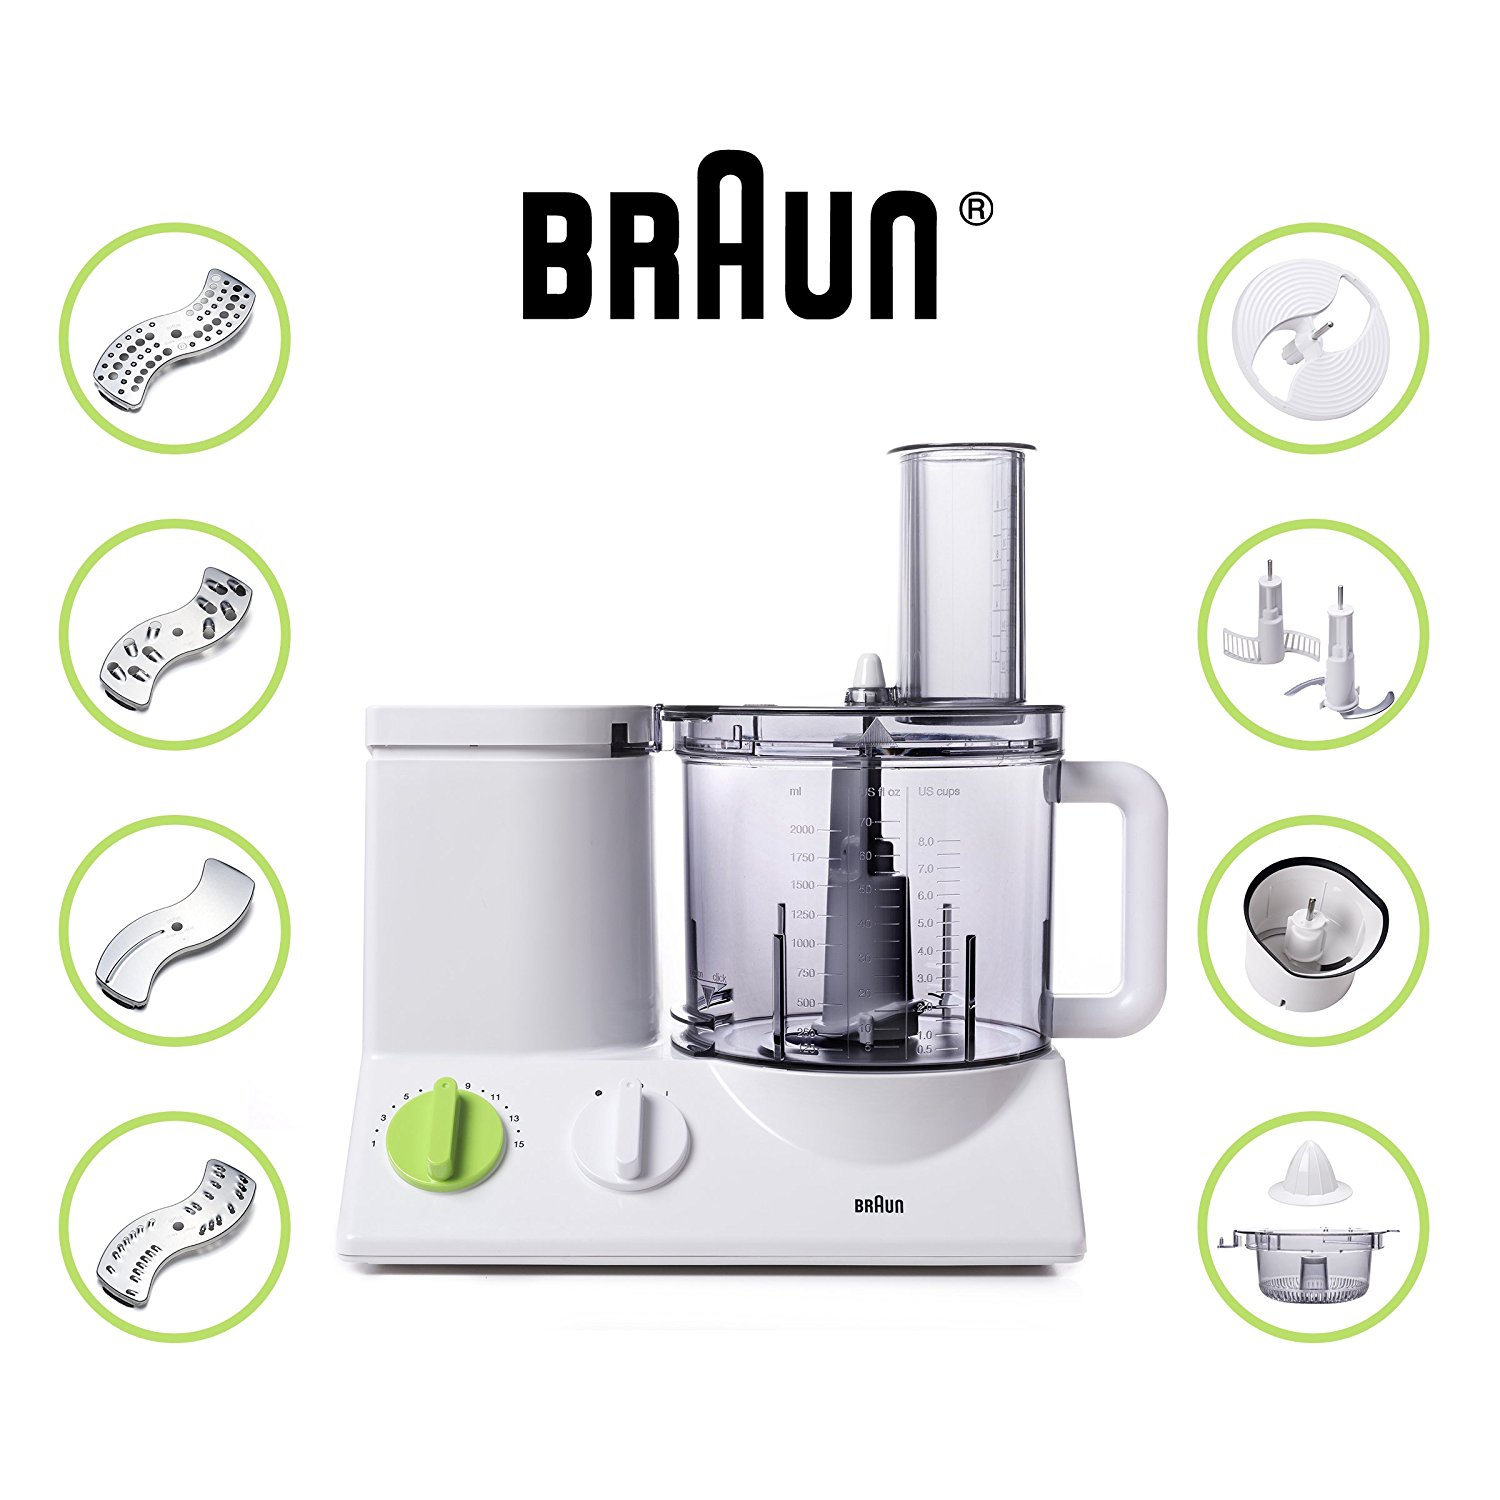 1. Braun FP3020 Food Processor